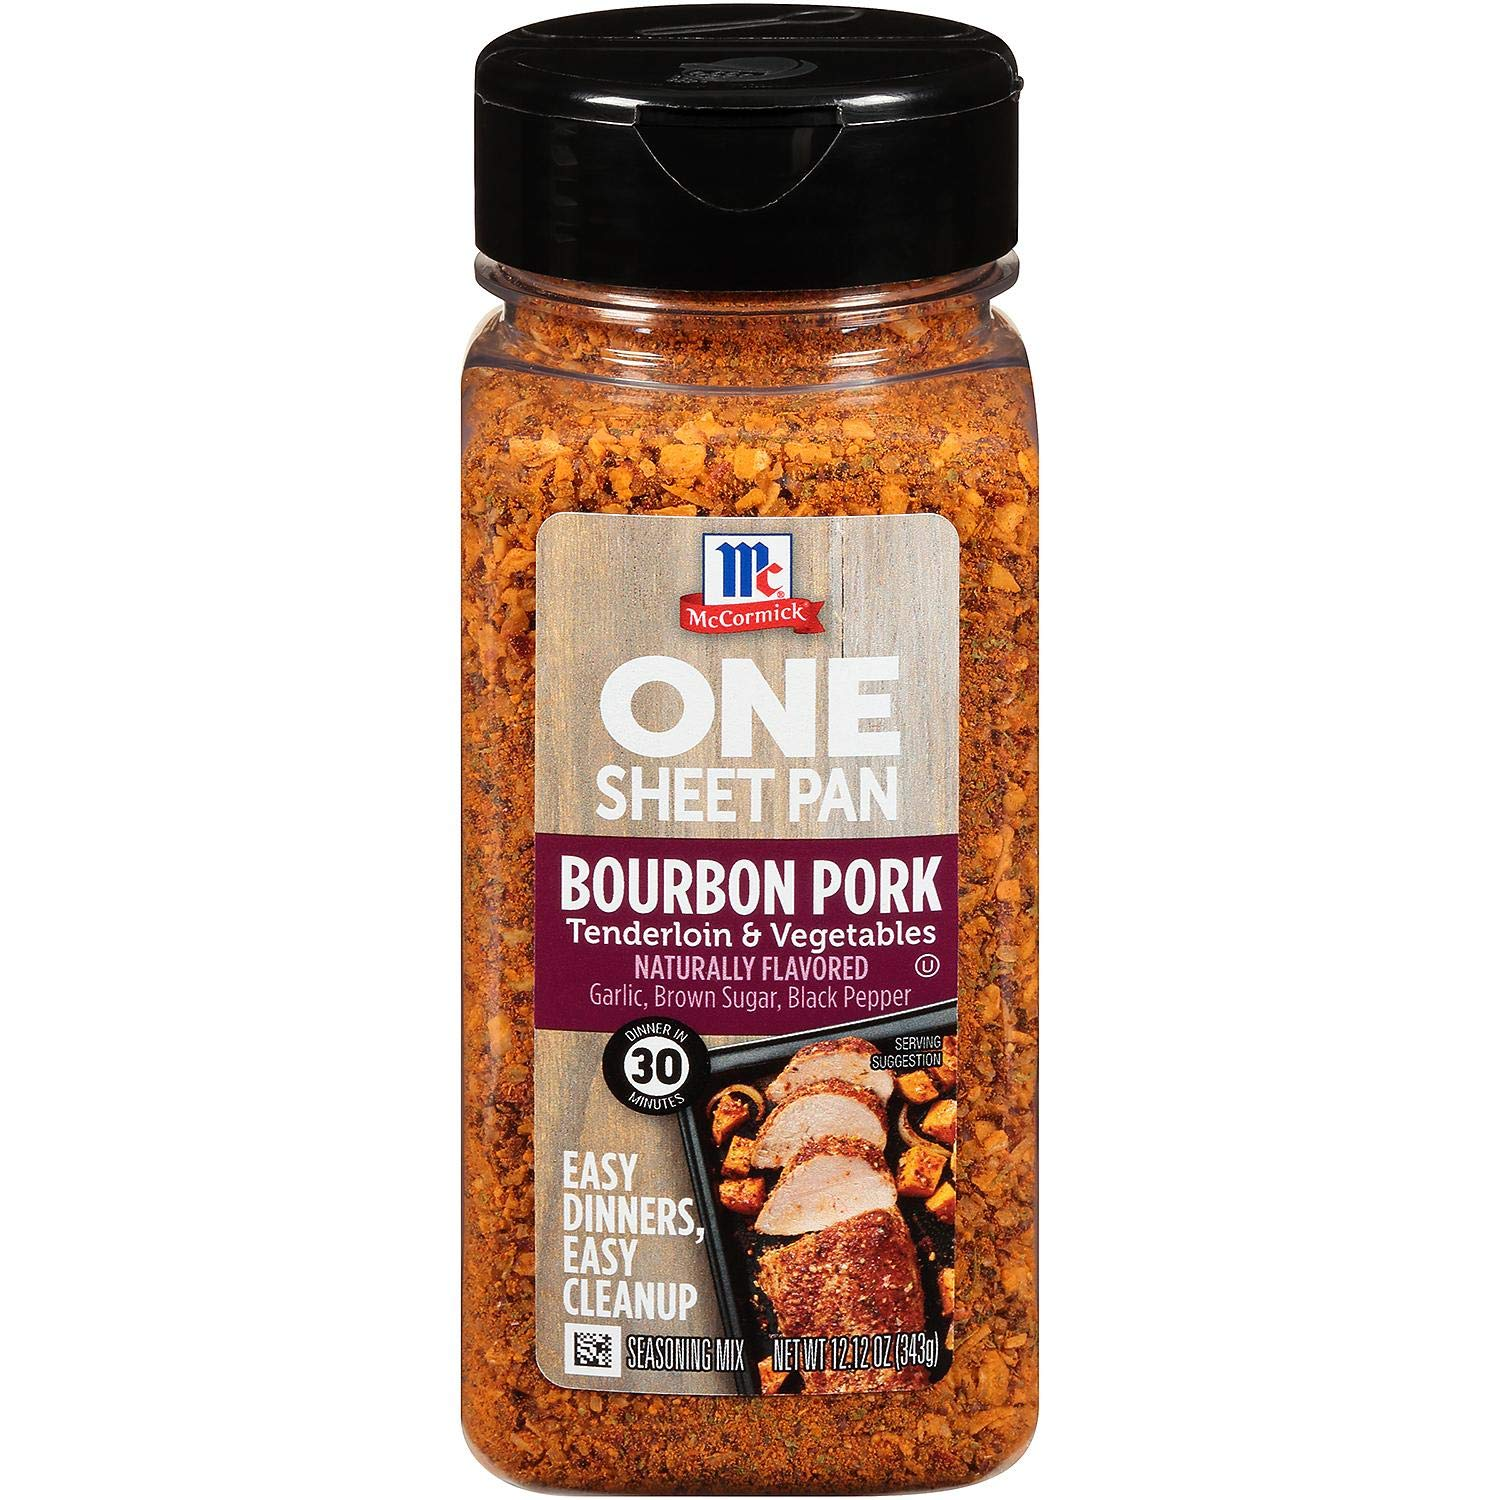 McCormick One Sheet Pan Bourbon Pork Seasoning Naturally Flavored, 12.12 Ounce